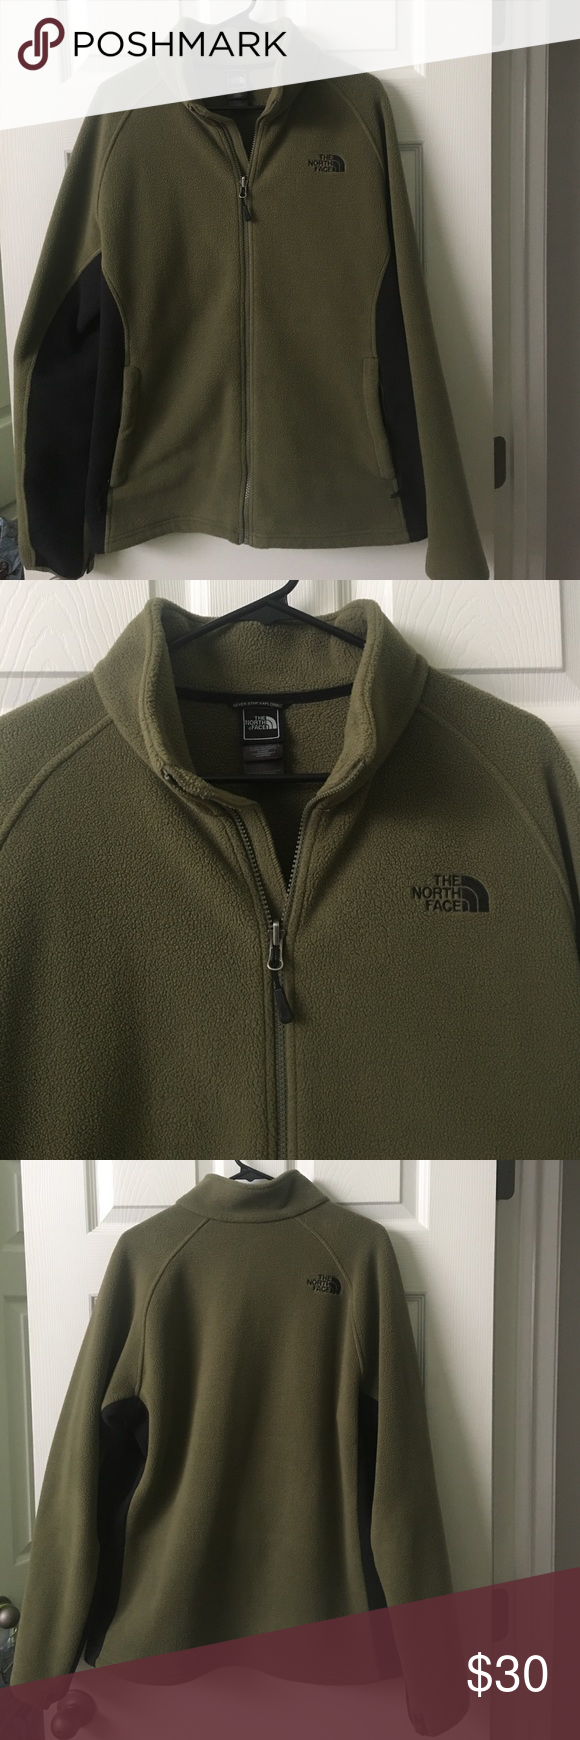 Hp Men S Large North Face Jacket North Face Jacket North Face Jacket Mens Jackets [ 1740 x 580 Pixel ]